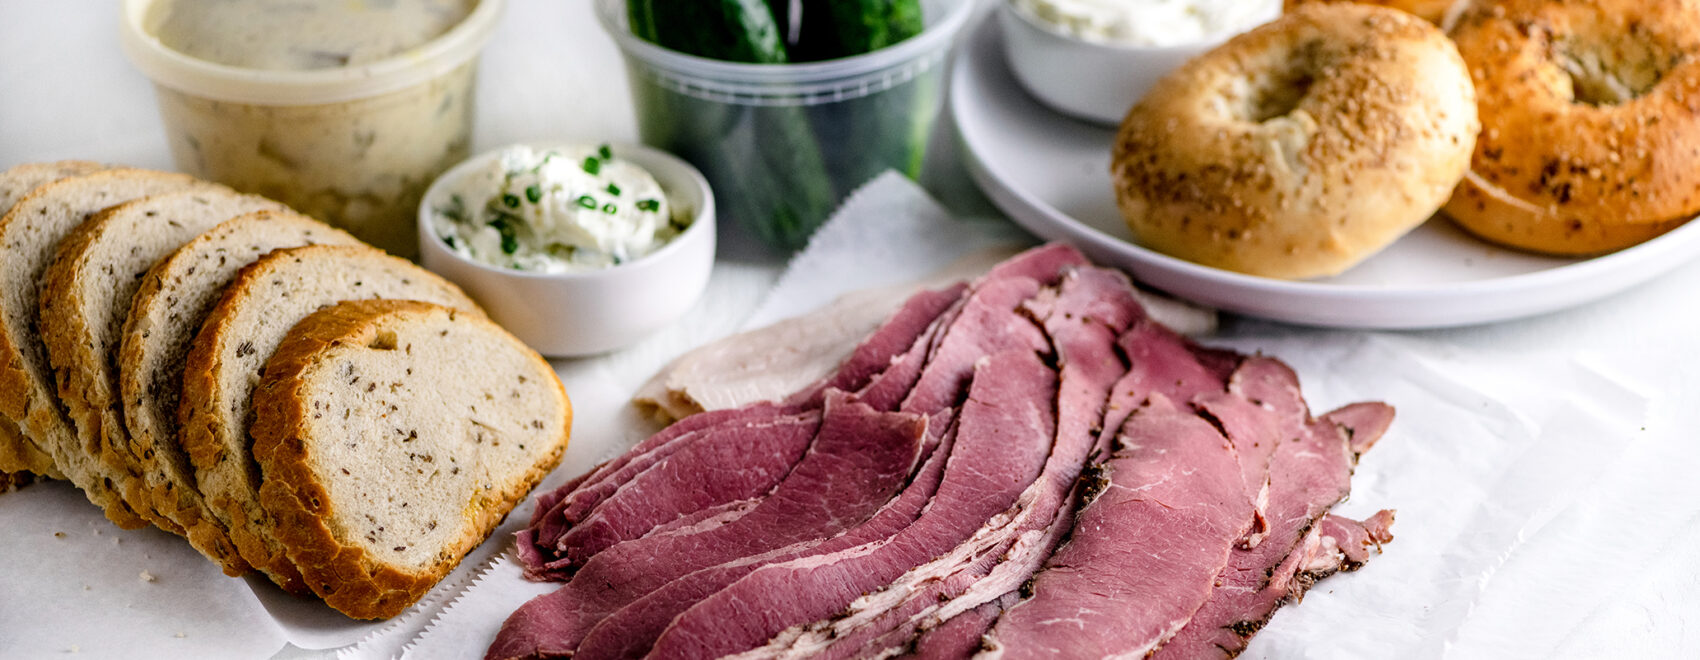 Sliced deli pastrami, corned beef and roast turkey beside a loaf of sliced rye bread, potato salad, NY bagels, cream cheese and pickles